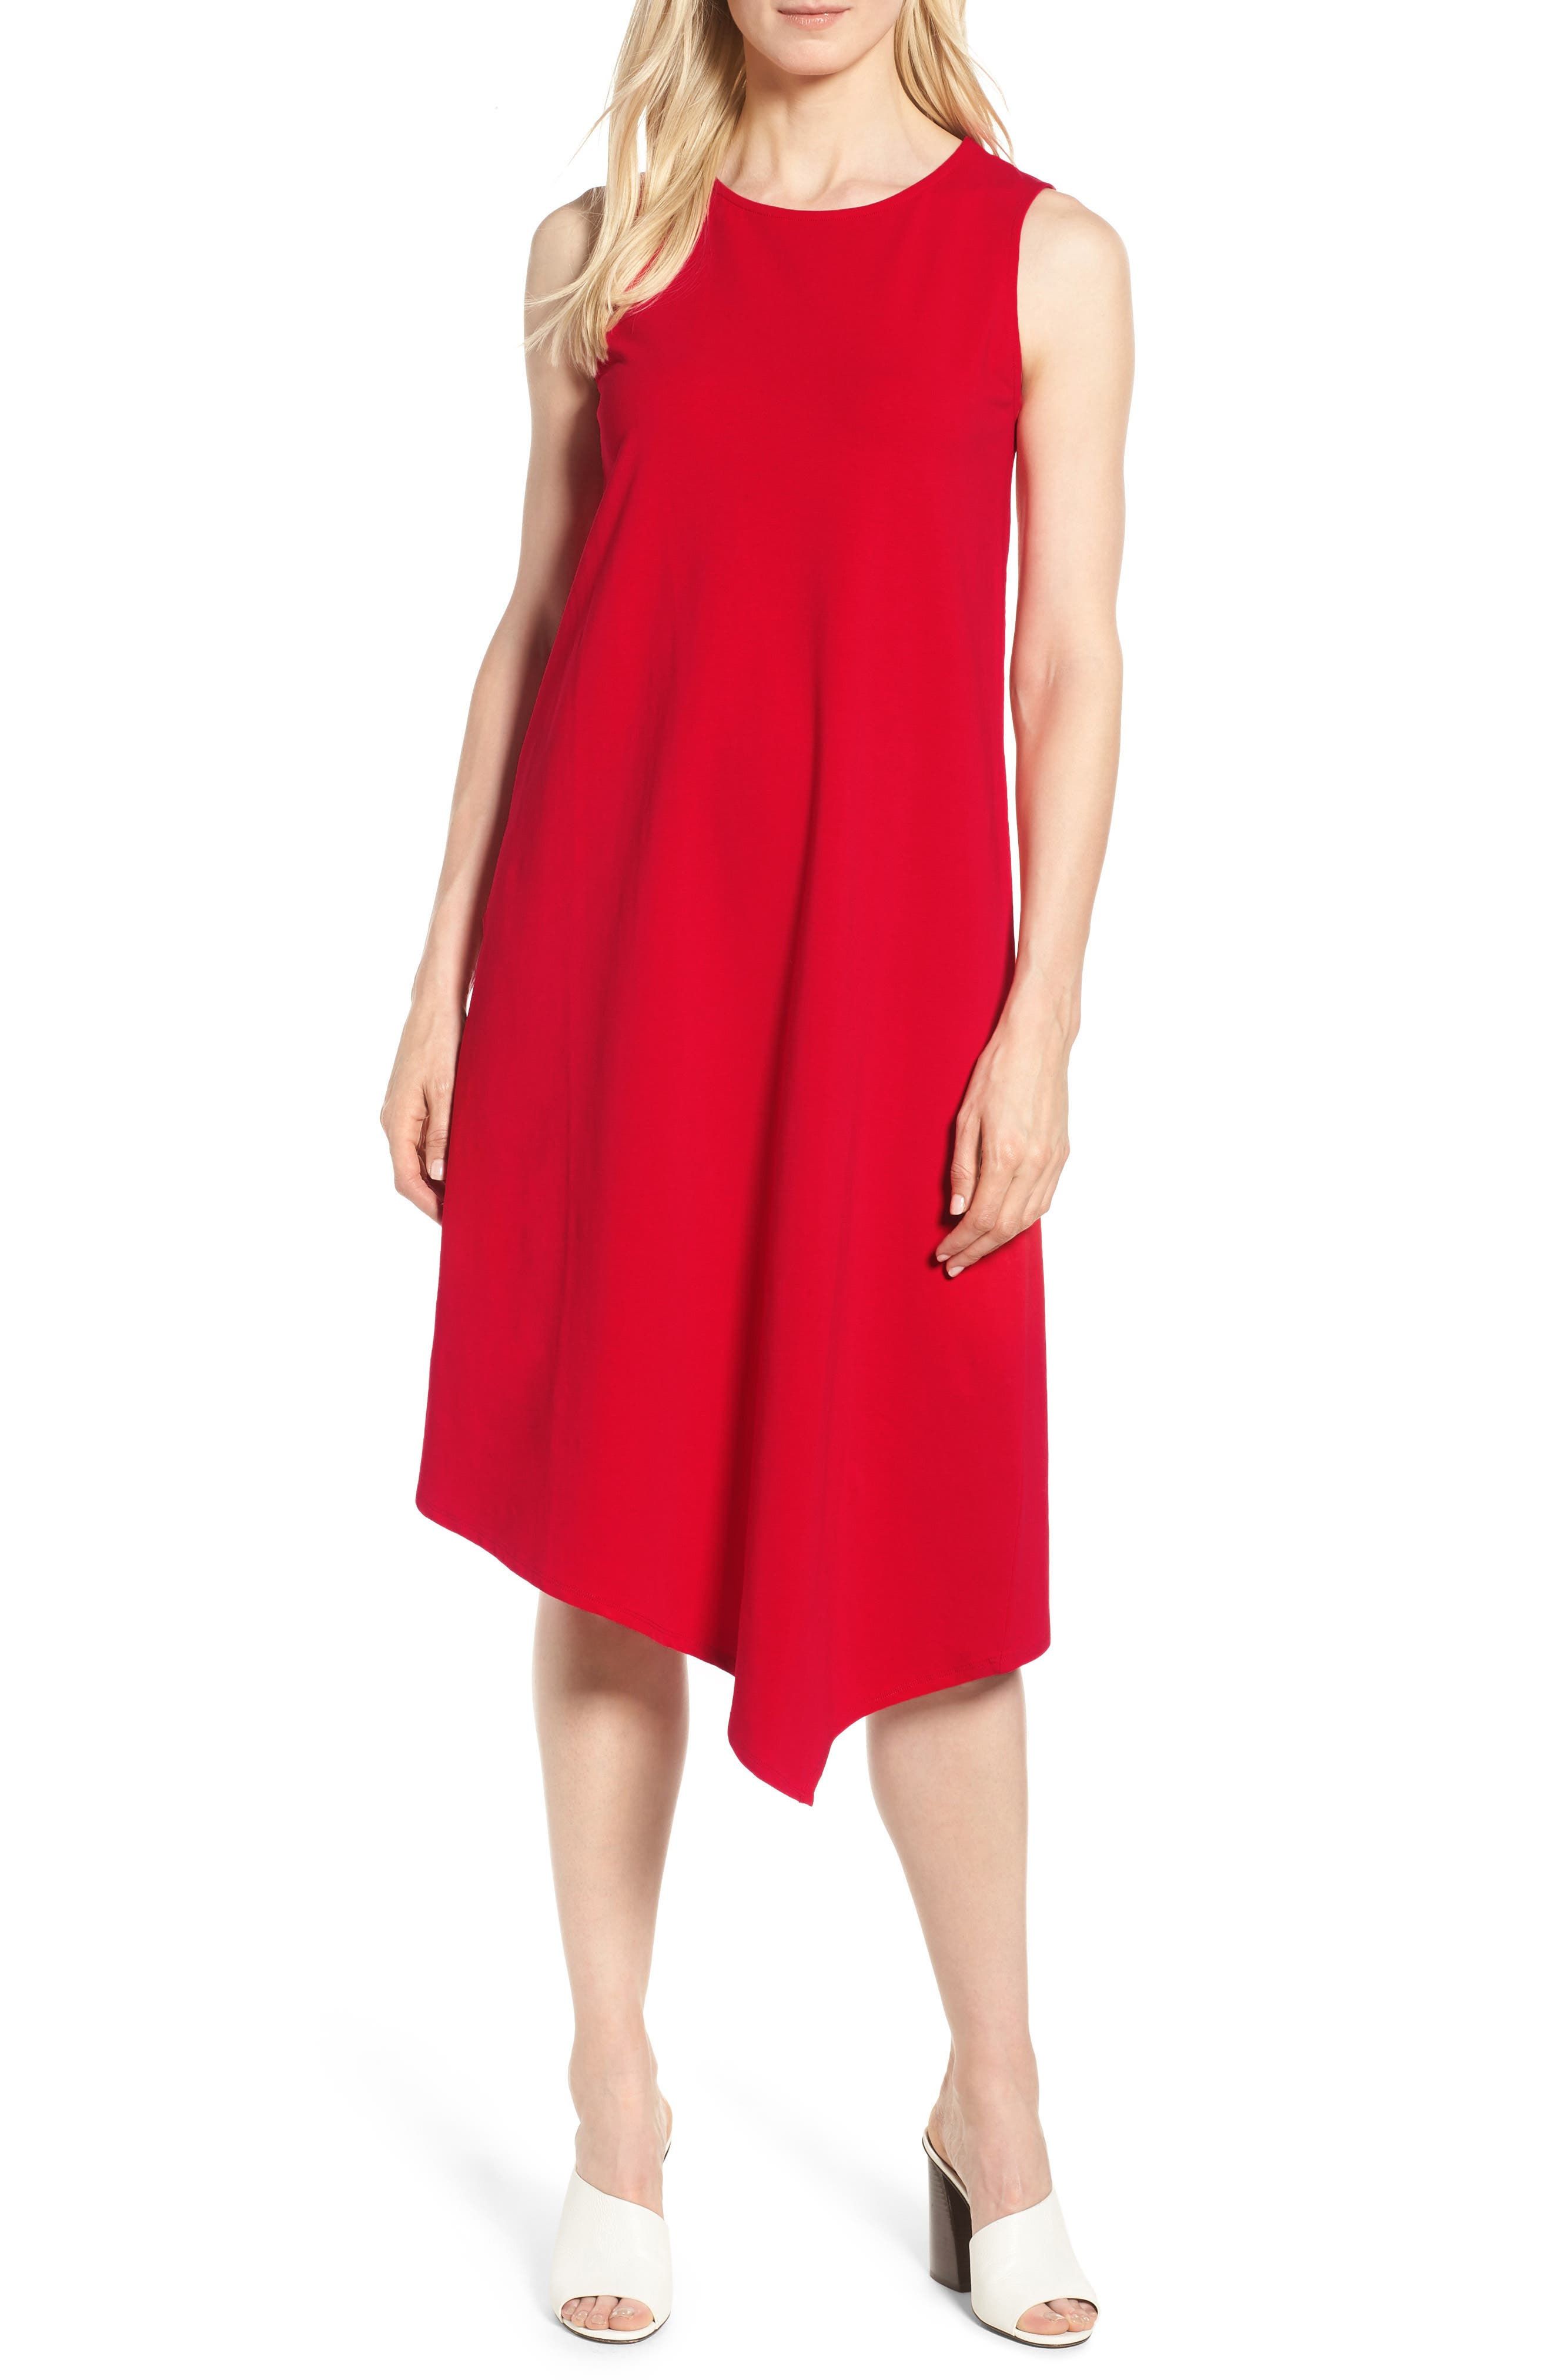 Sweet Escape Tank Dress,                             Main thumbnail 1, color,                             Red Sangria